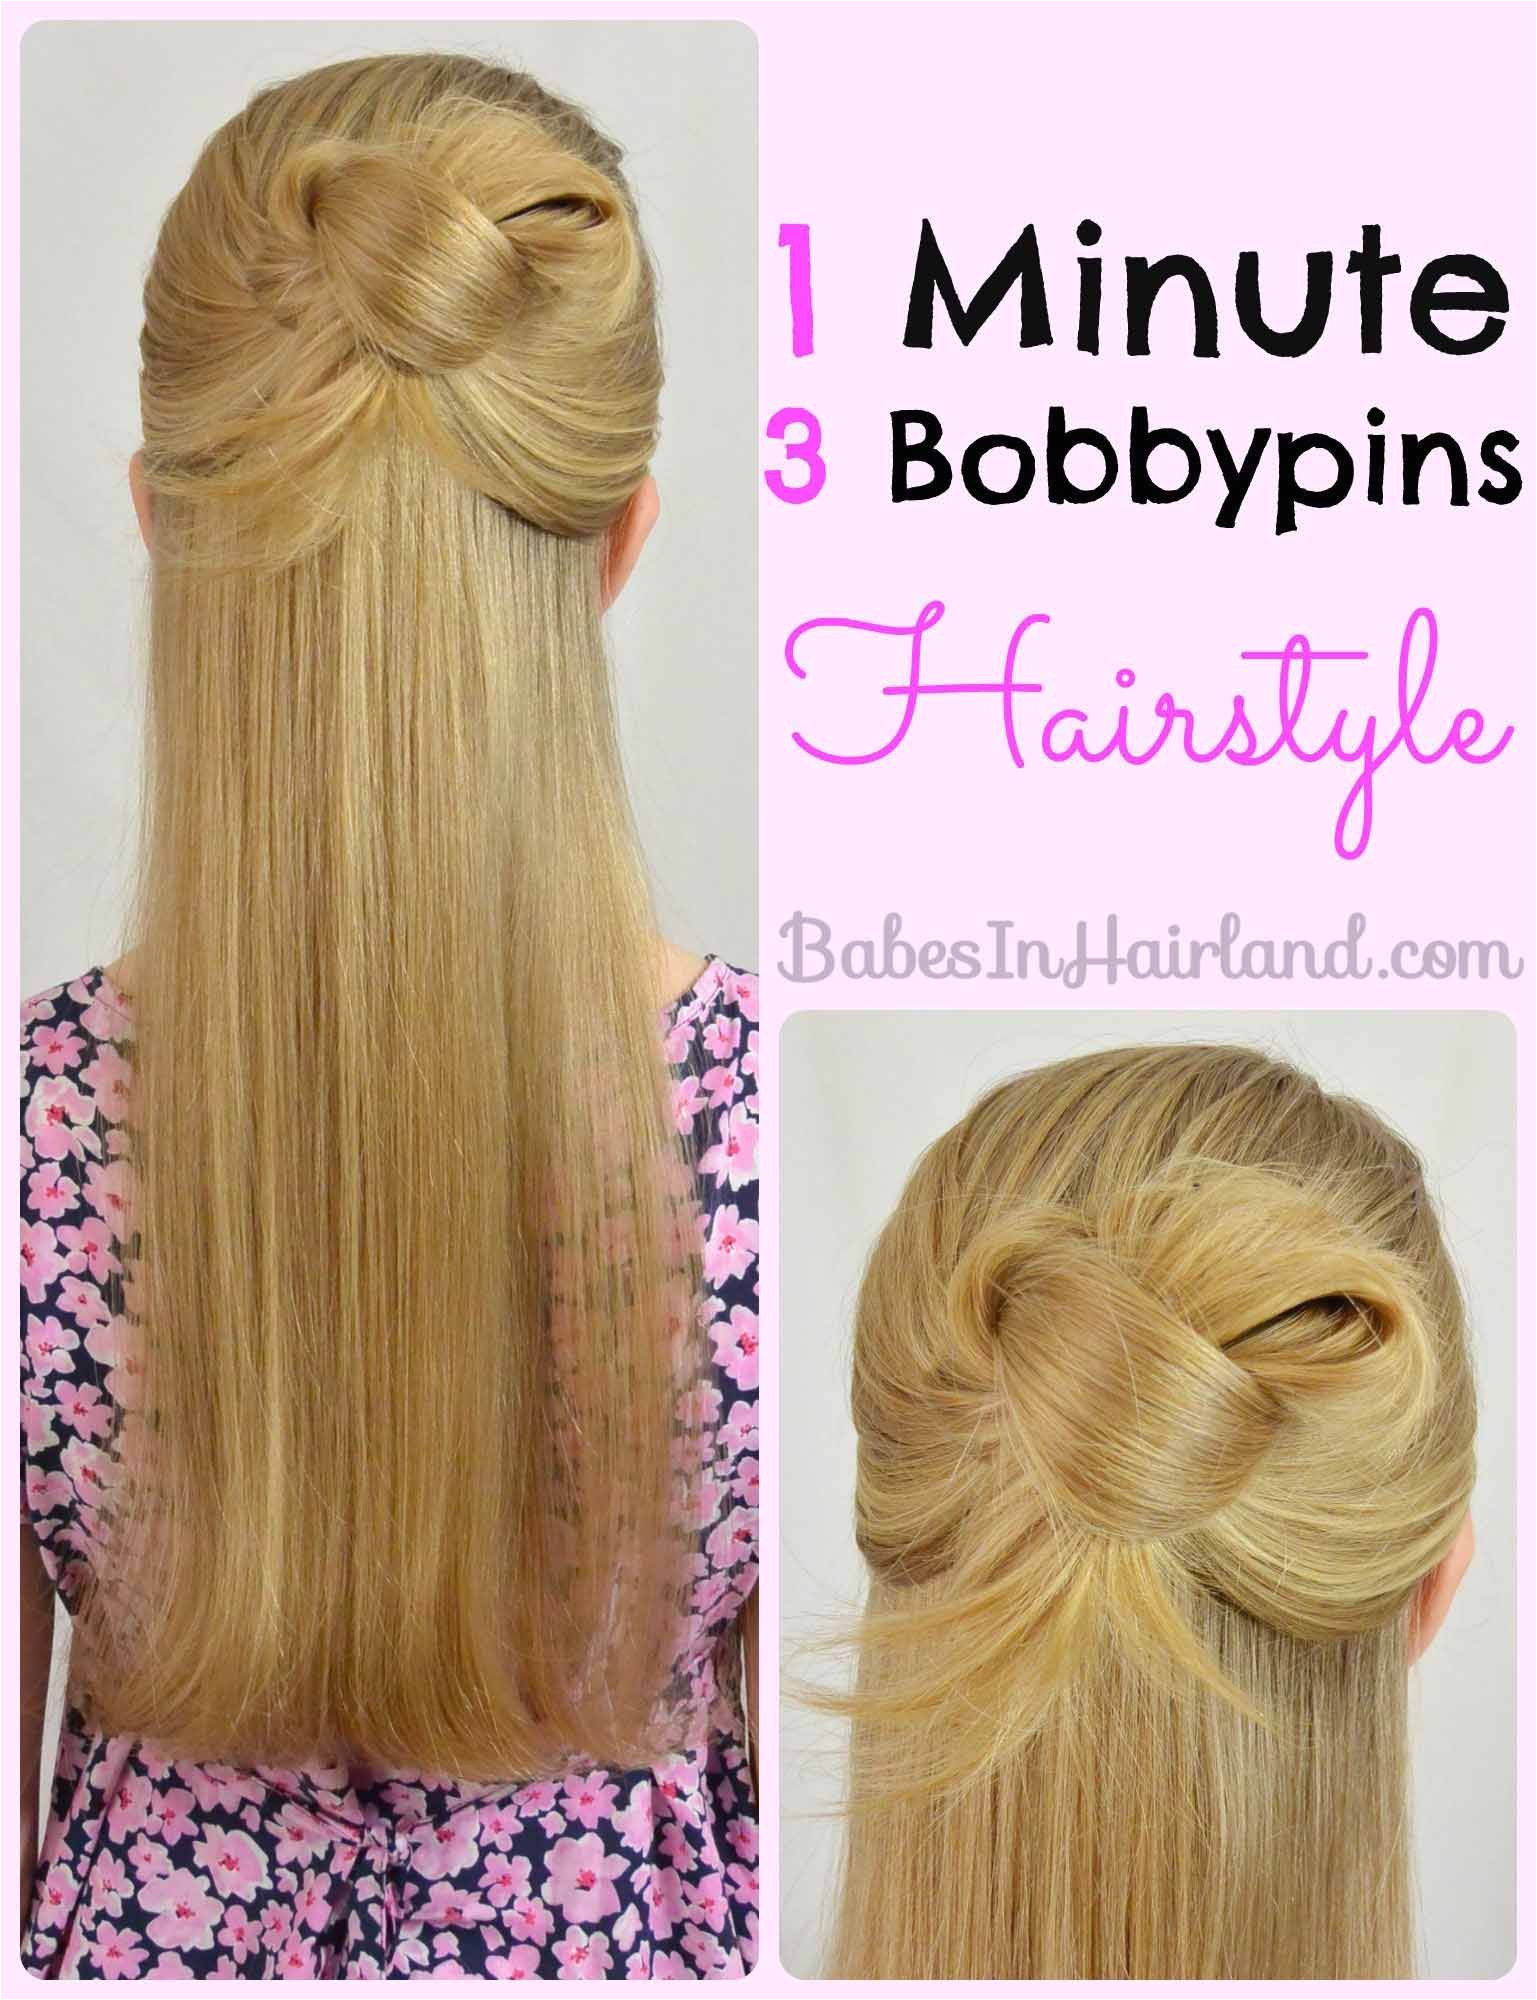 Easy 1 Minute Hairstyle